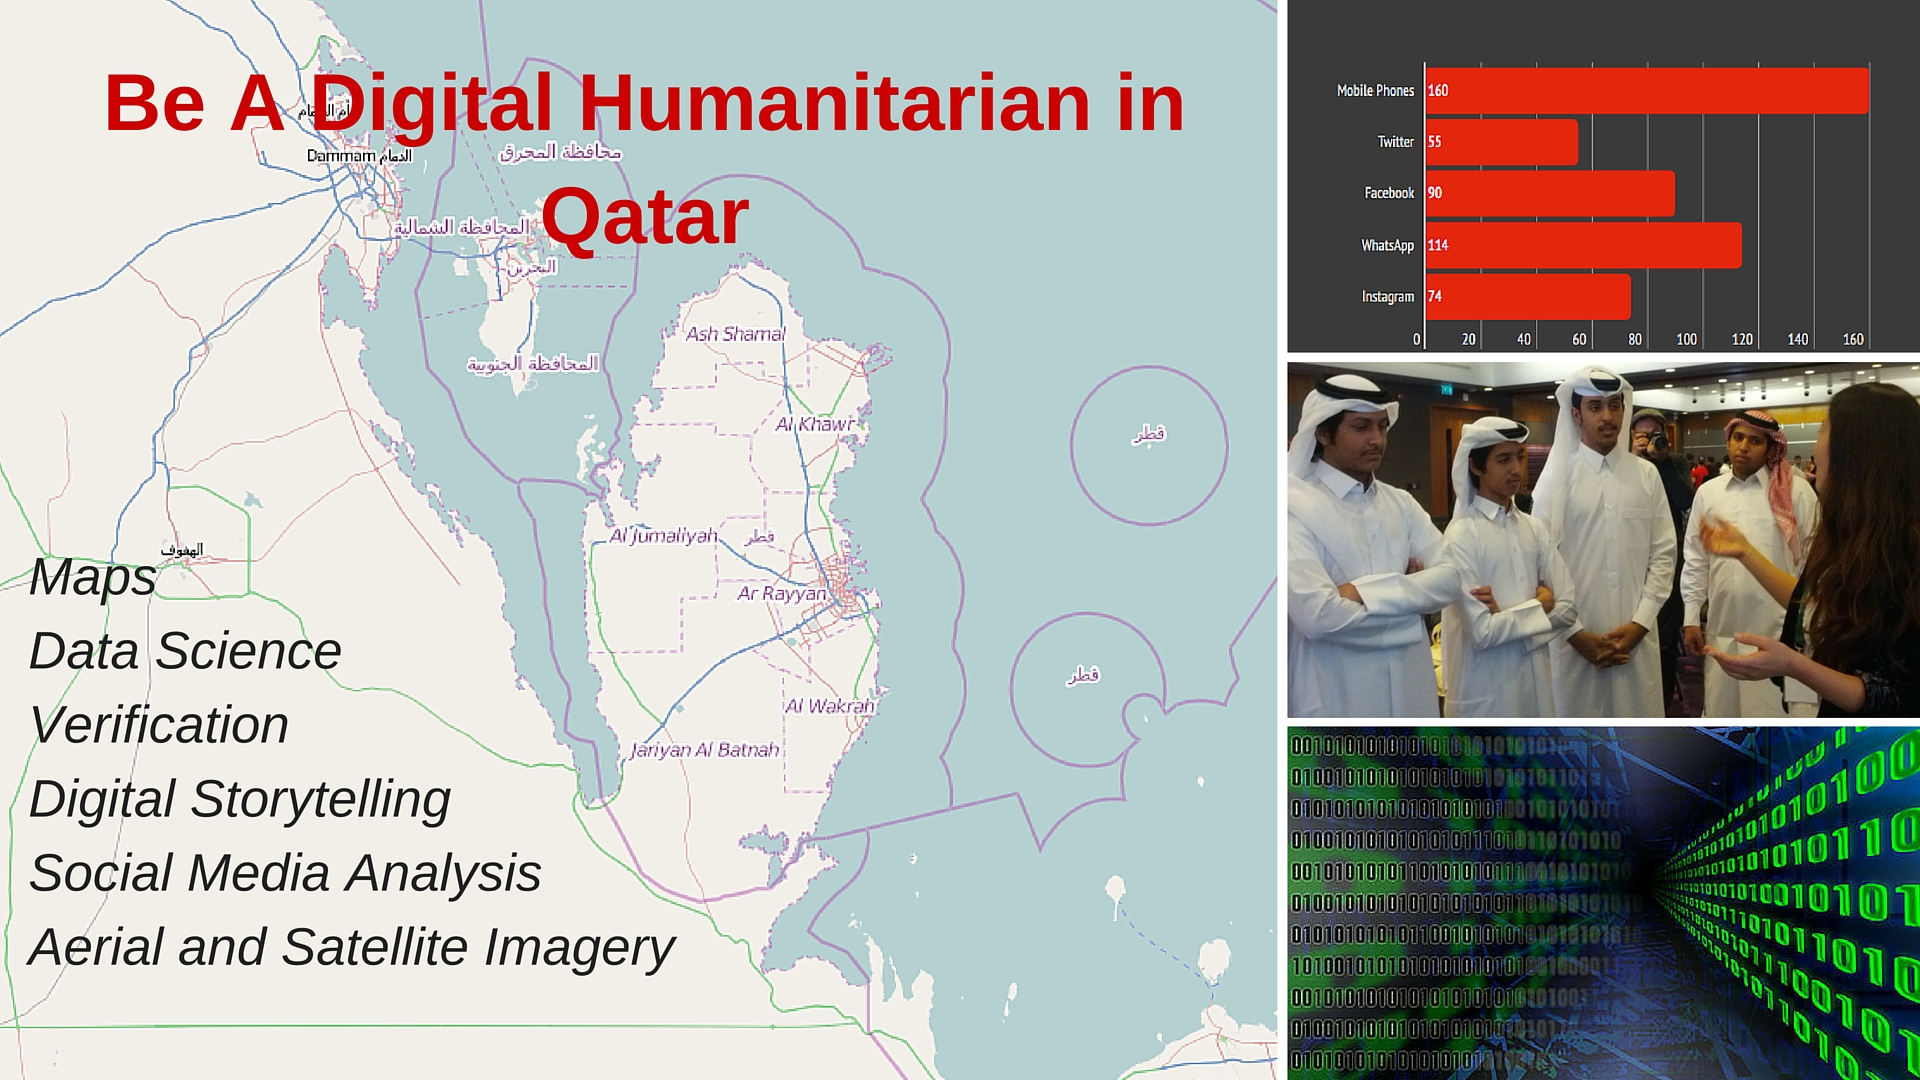 Digital Humanitarians in Qatar(updated)